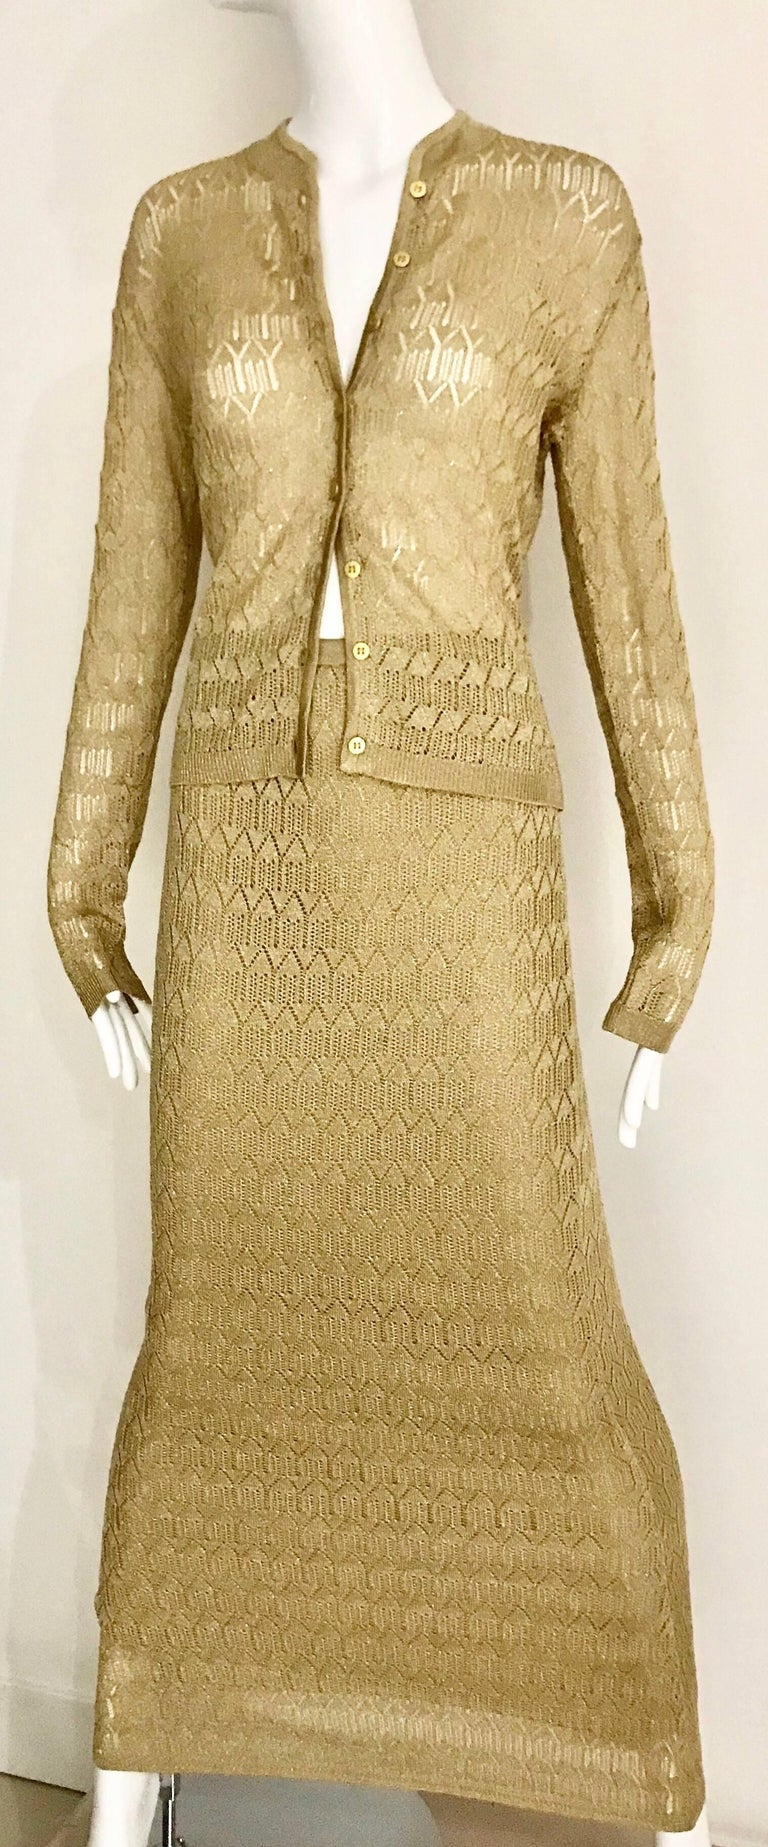 Christian Dior Gold Knit Cardigan Skirt Set In Excellent Condition For Sale In Beverly Hills, CA